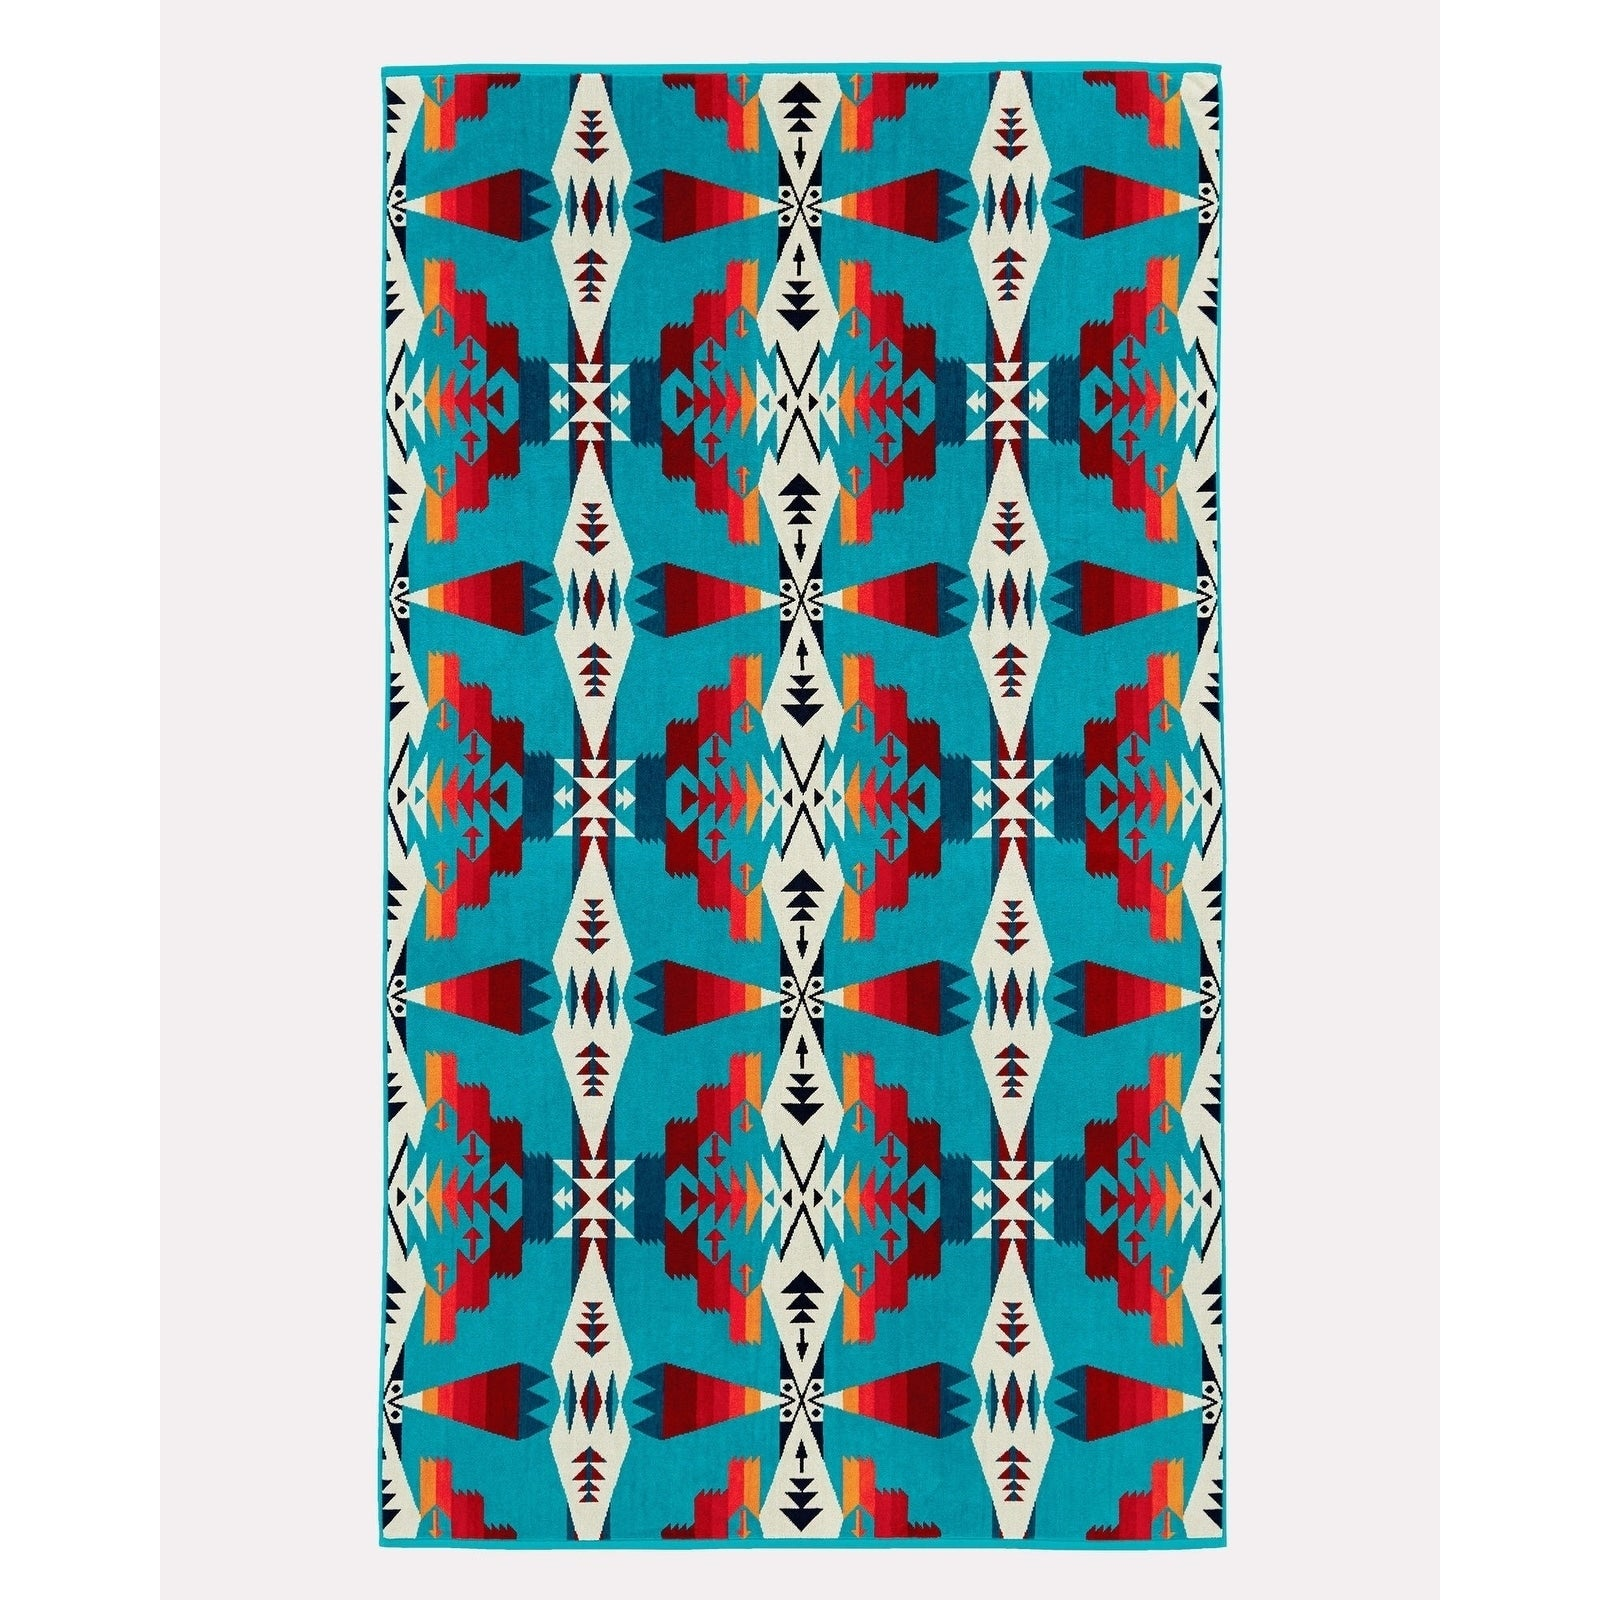 Tucson Tuquoise Ovesized Spa Towel Blue Brown Novelty Cotton Single Piece - Diamond Home USA